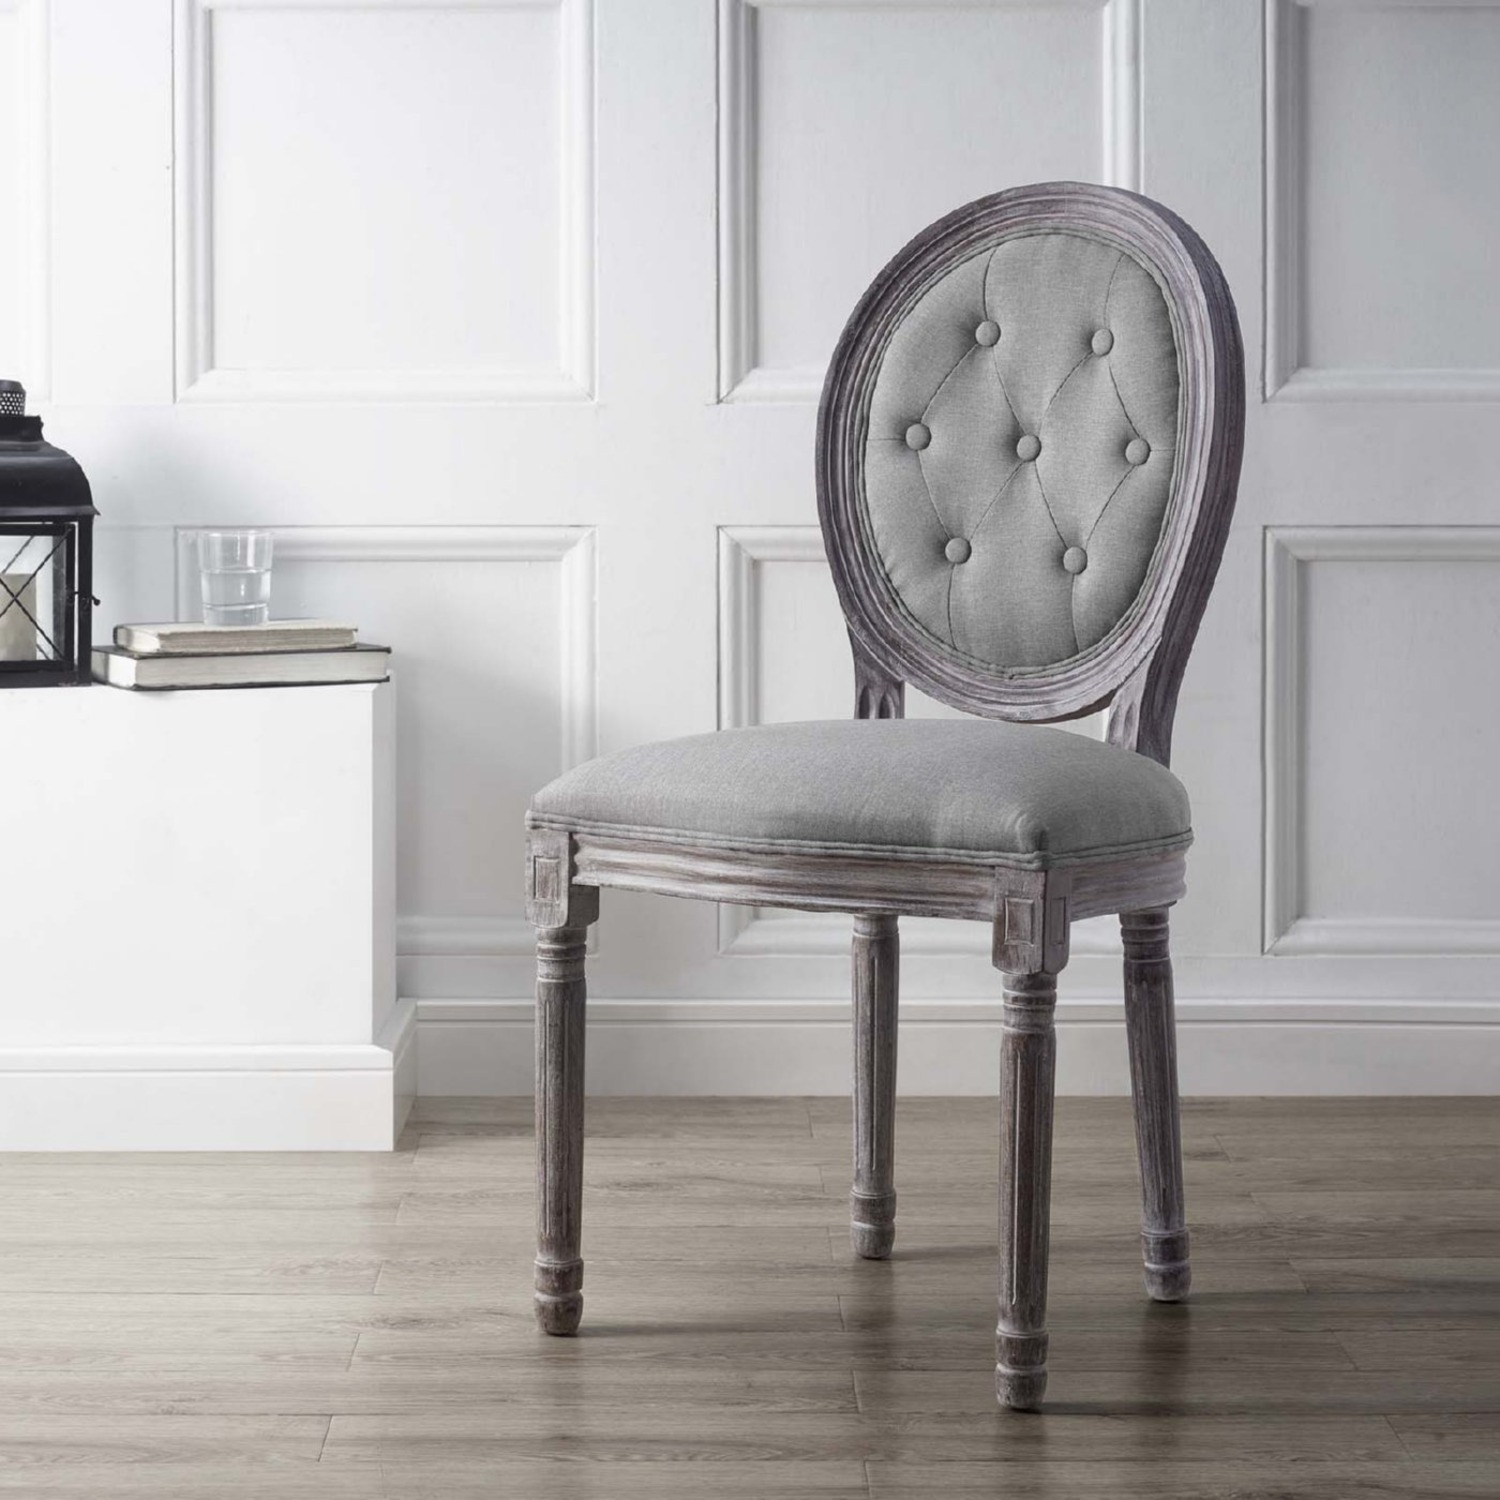 Traditional Dining Chair In Light Gray Finish - image-4